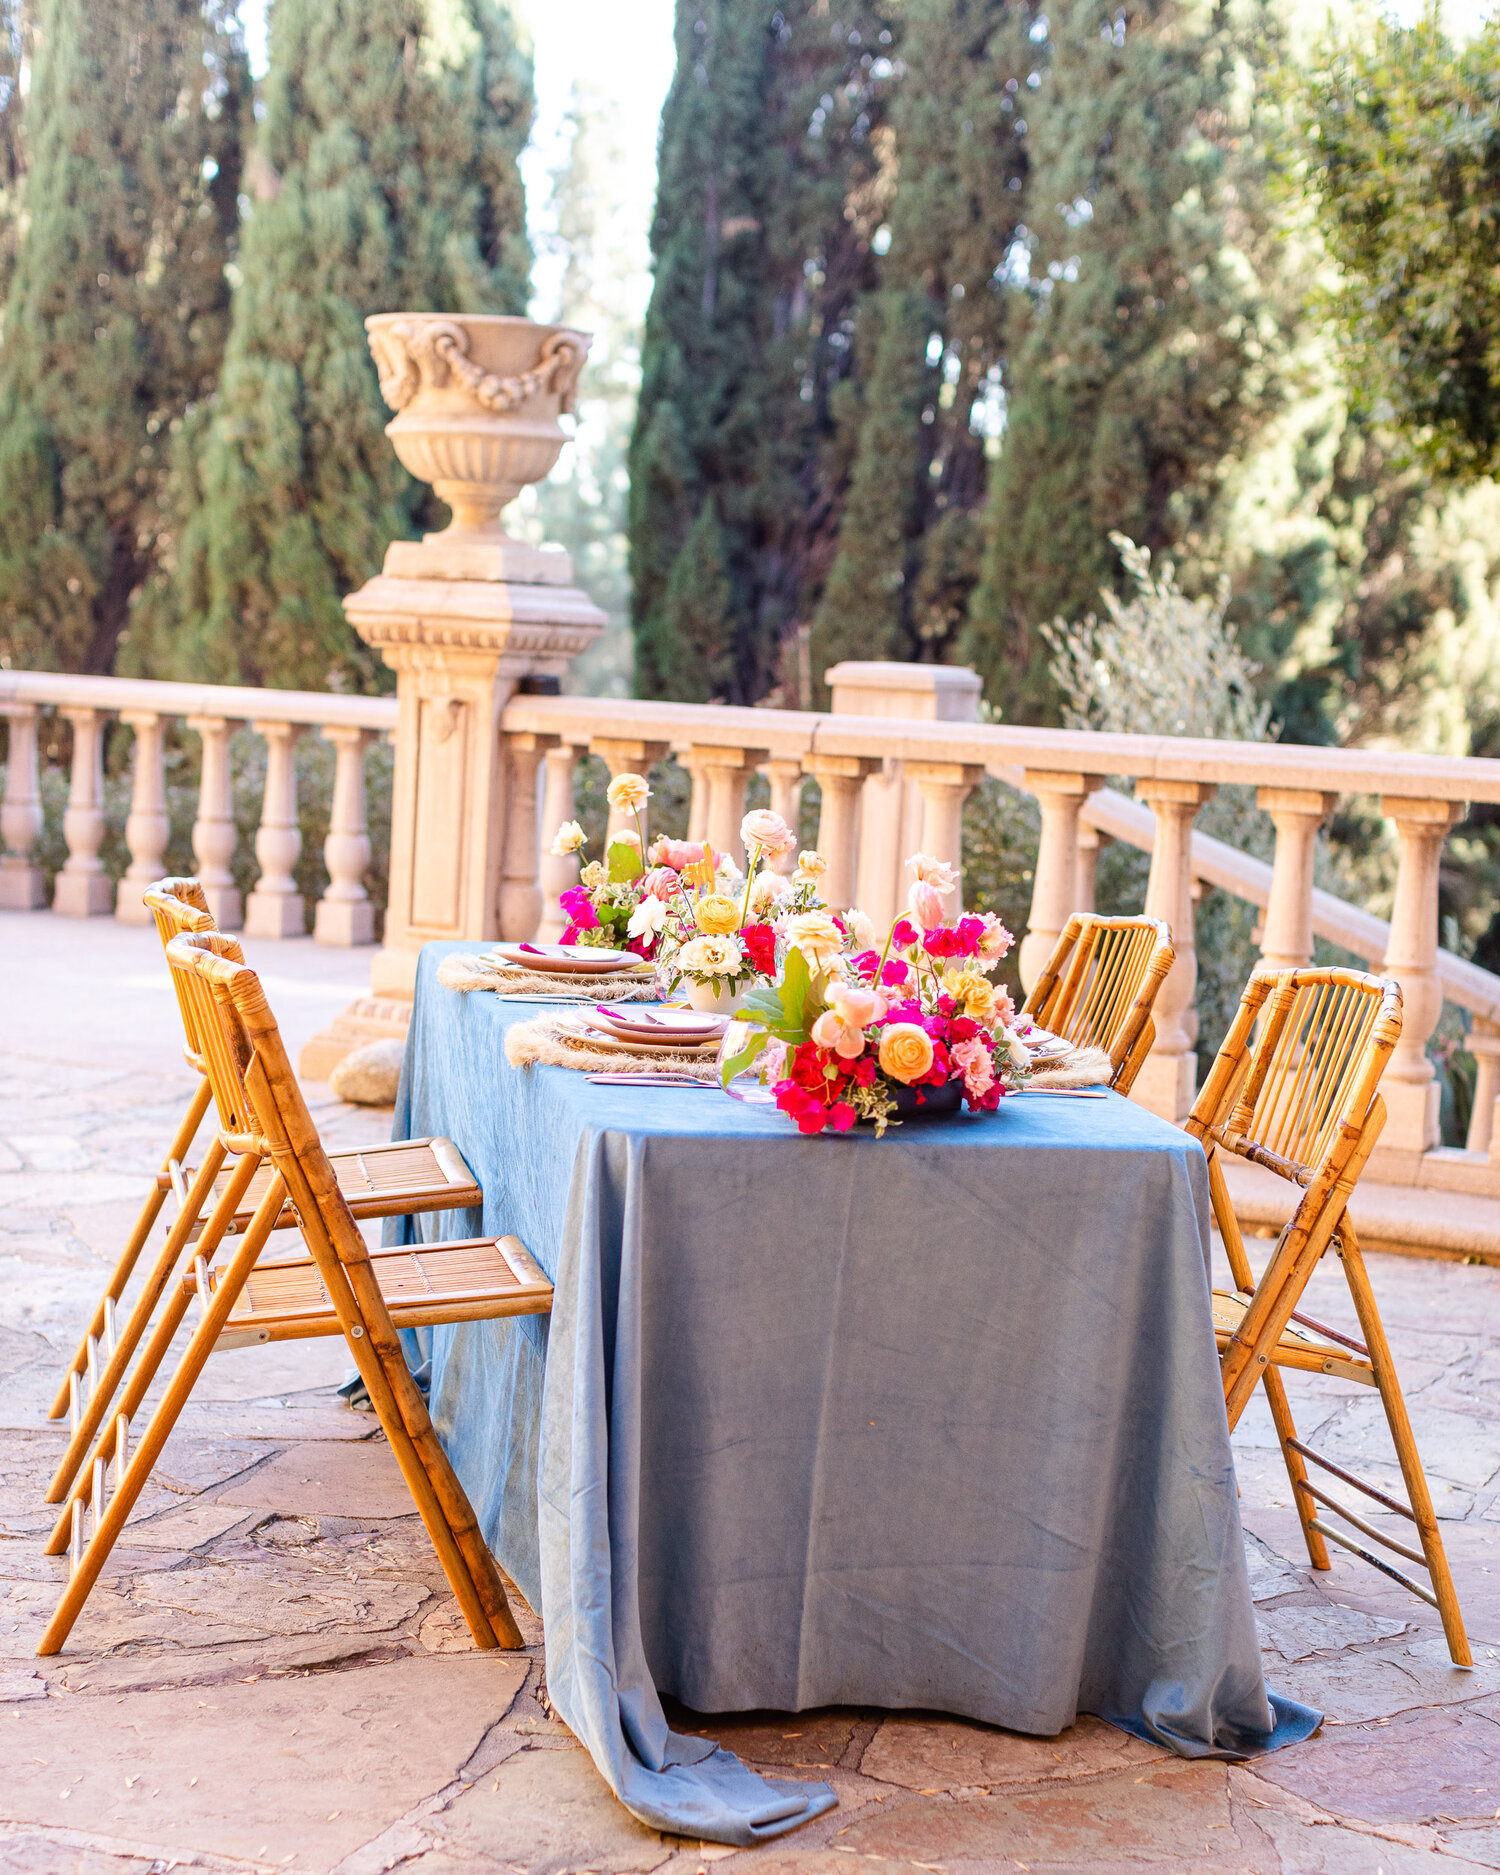 h & l lovely creations bespoke weddings southern california colourful 00017